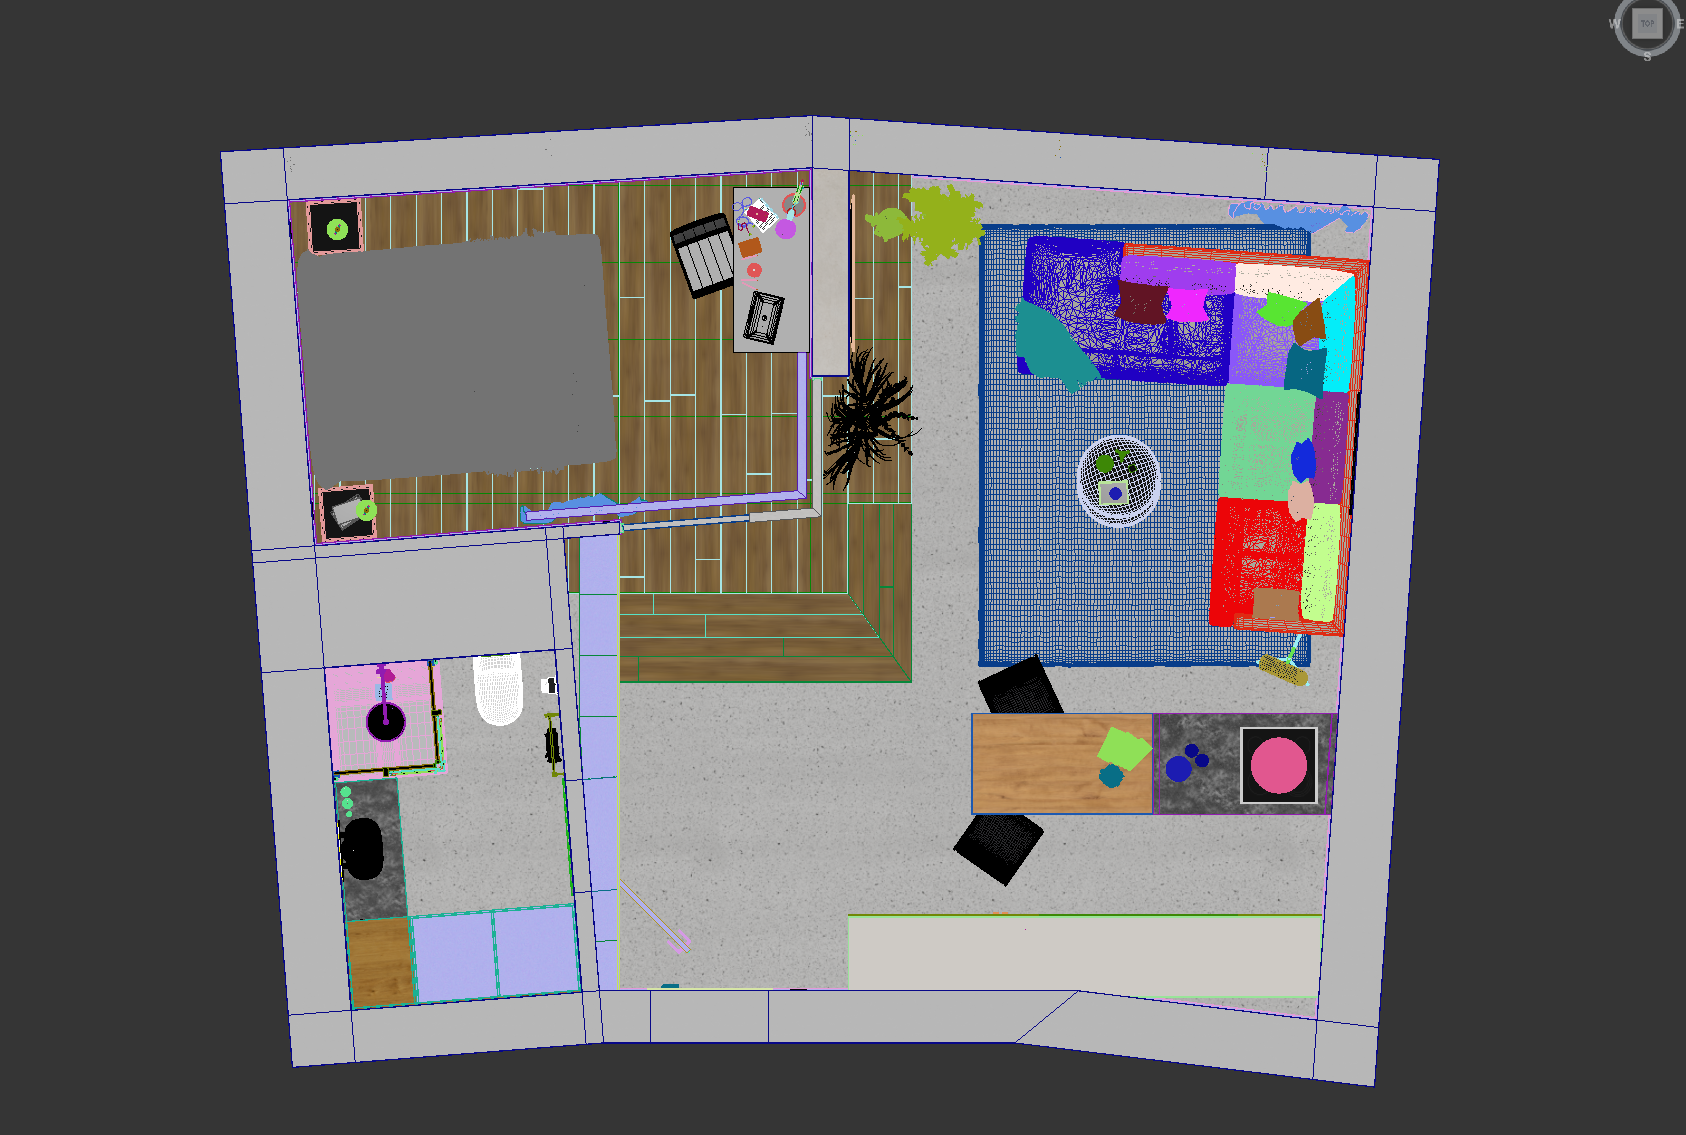 Screenshot of a Draft Interior in 3Ds Max